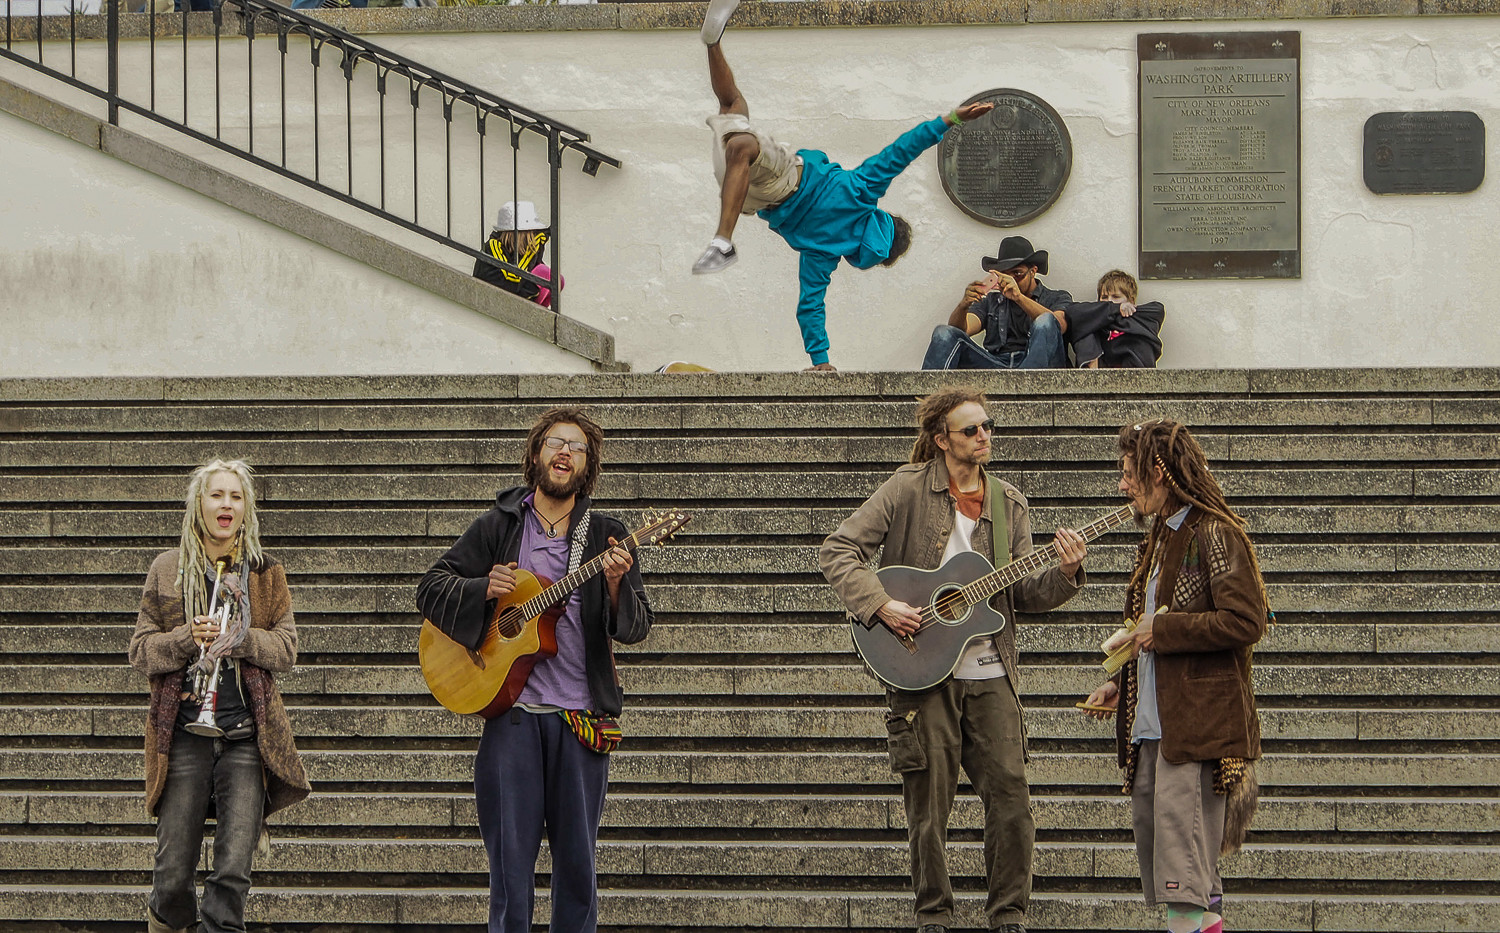 Street Performers in Jackson Square